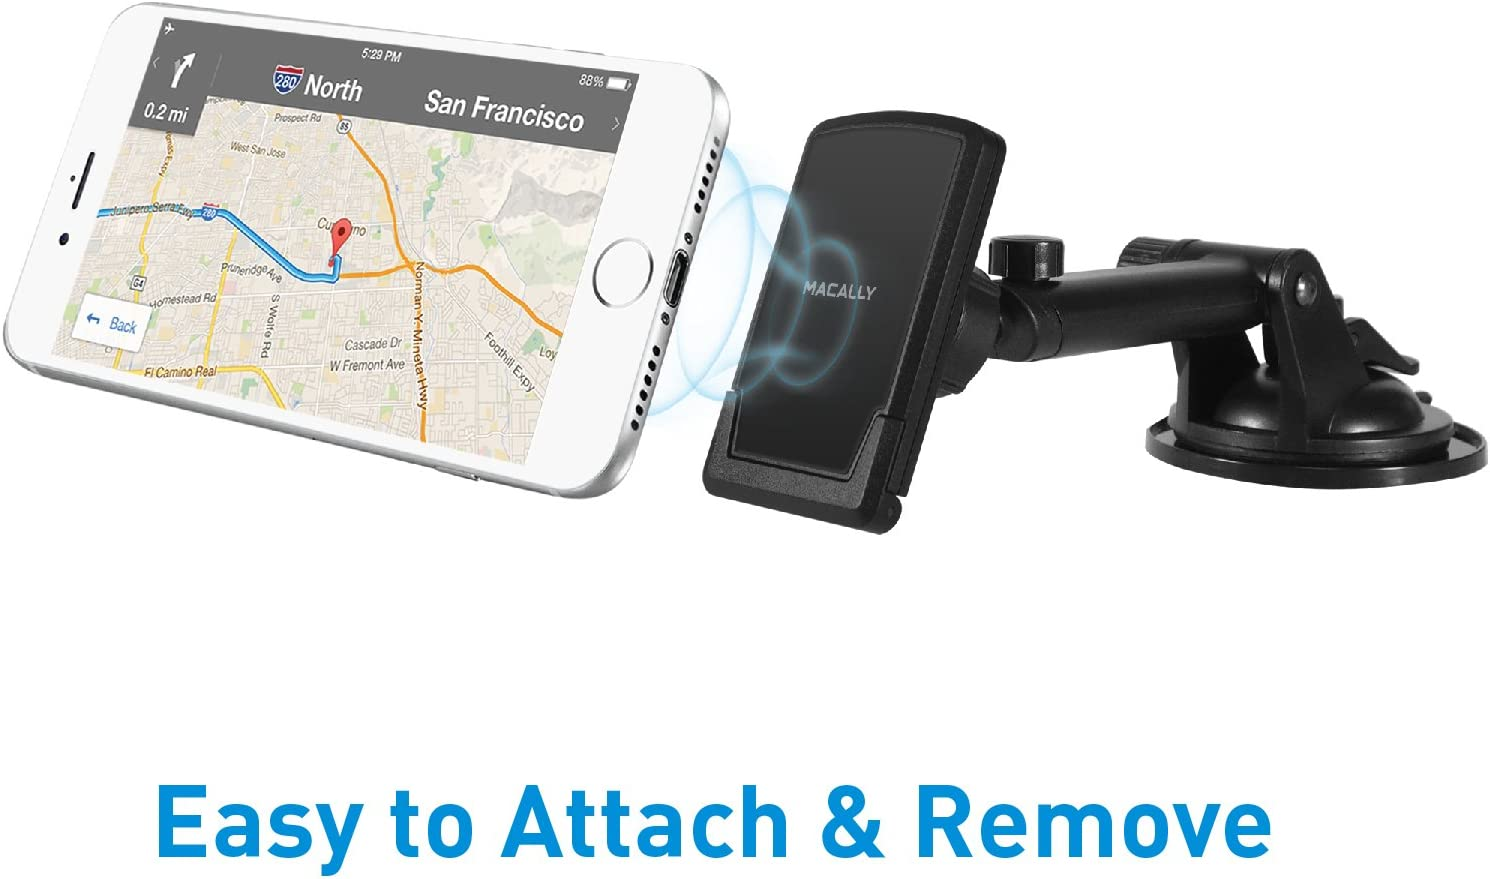 6s Plus 6 Samsung Galaxy S9 S9 S8 S7 Edge Note 5 7 7 TELEMAG Macally Magnetic Dashboard//Windshield Suction Cup Car Phone Mount Holder with Extendable Telescopic Arm for iPhone Xs XS Max XR X 8 8